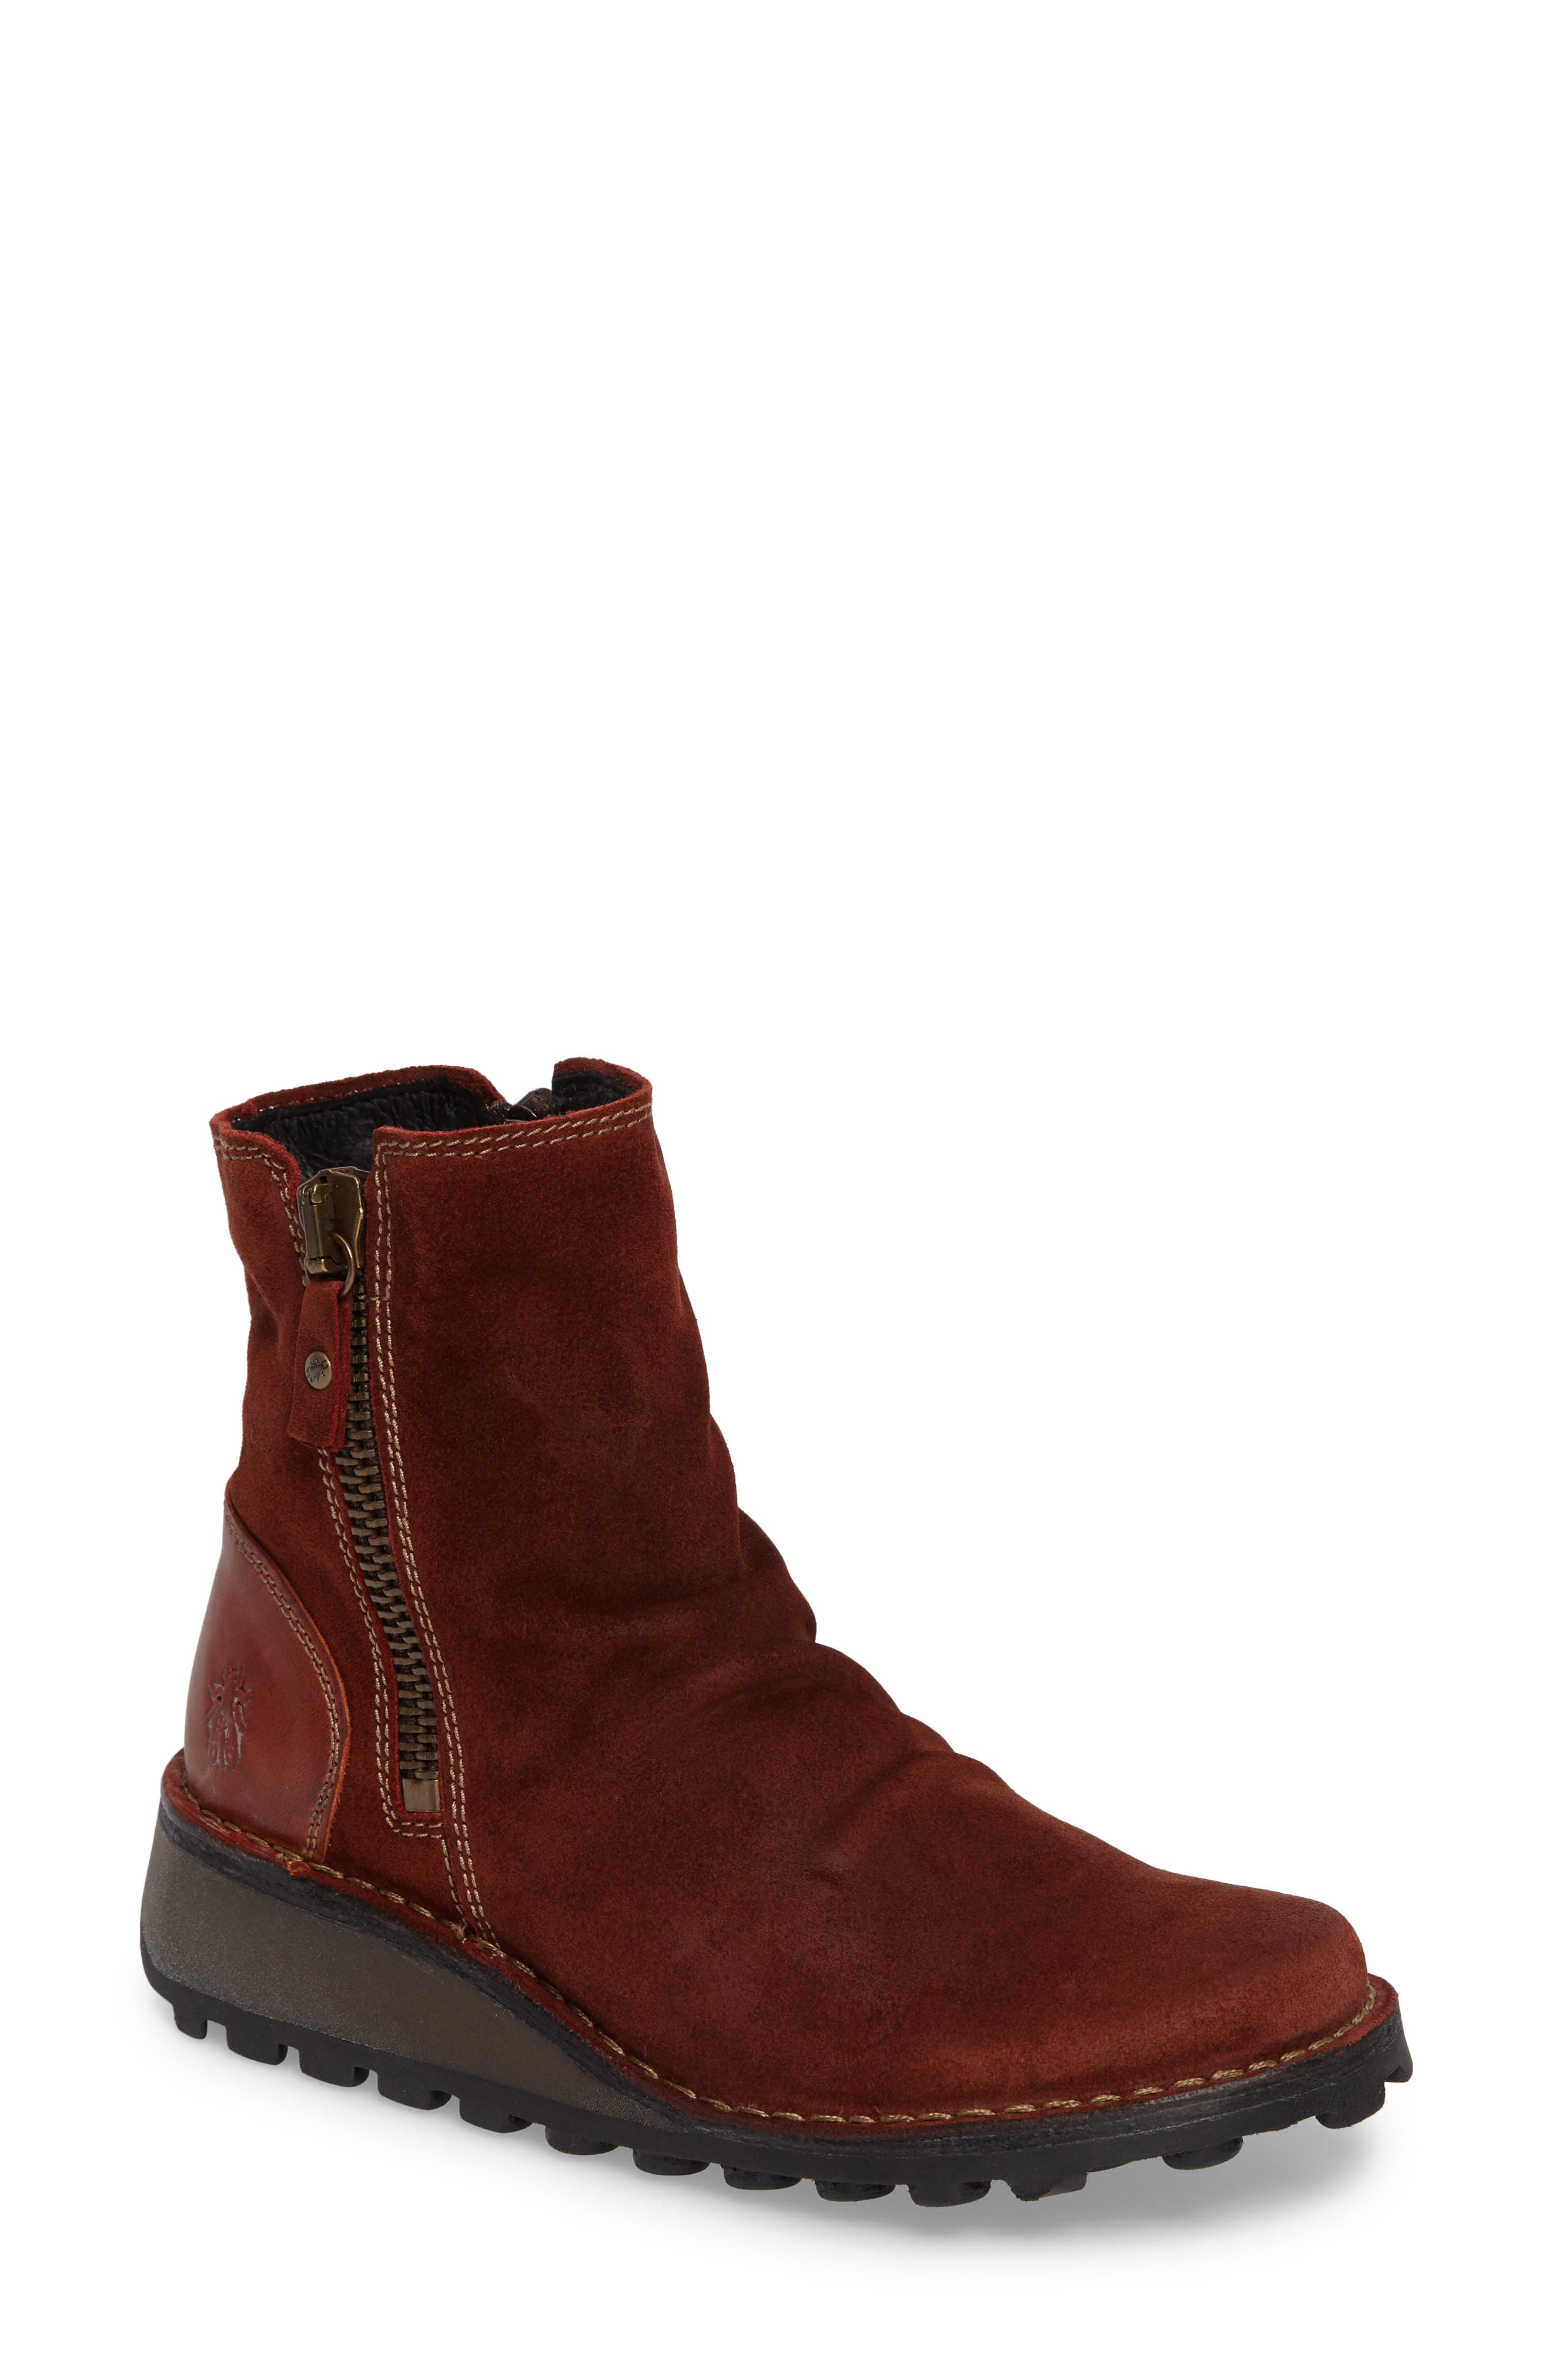 Alternate Image 1 Selected - Fly London Mong Boot (Women)